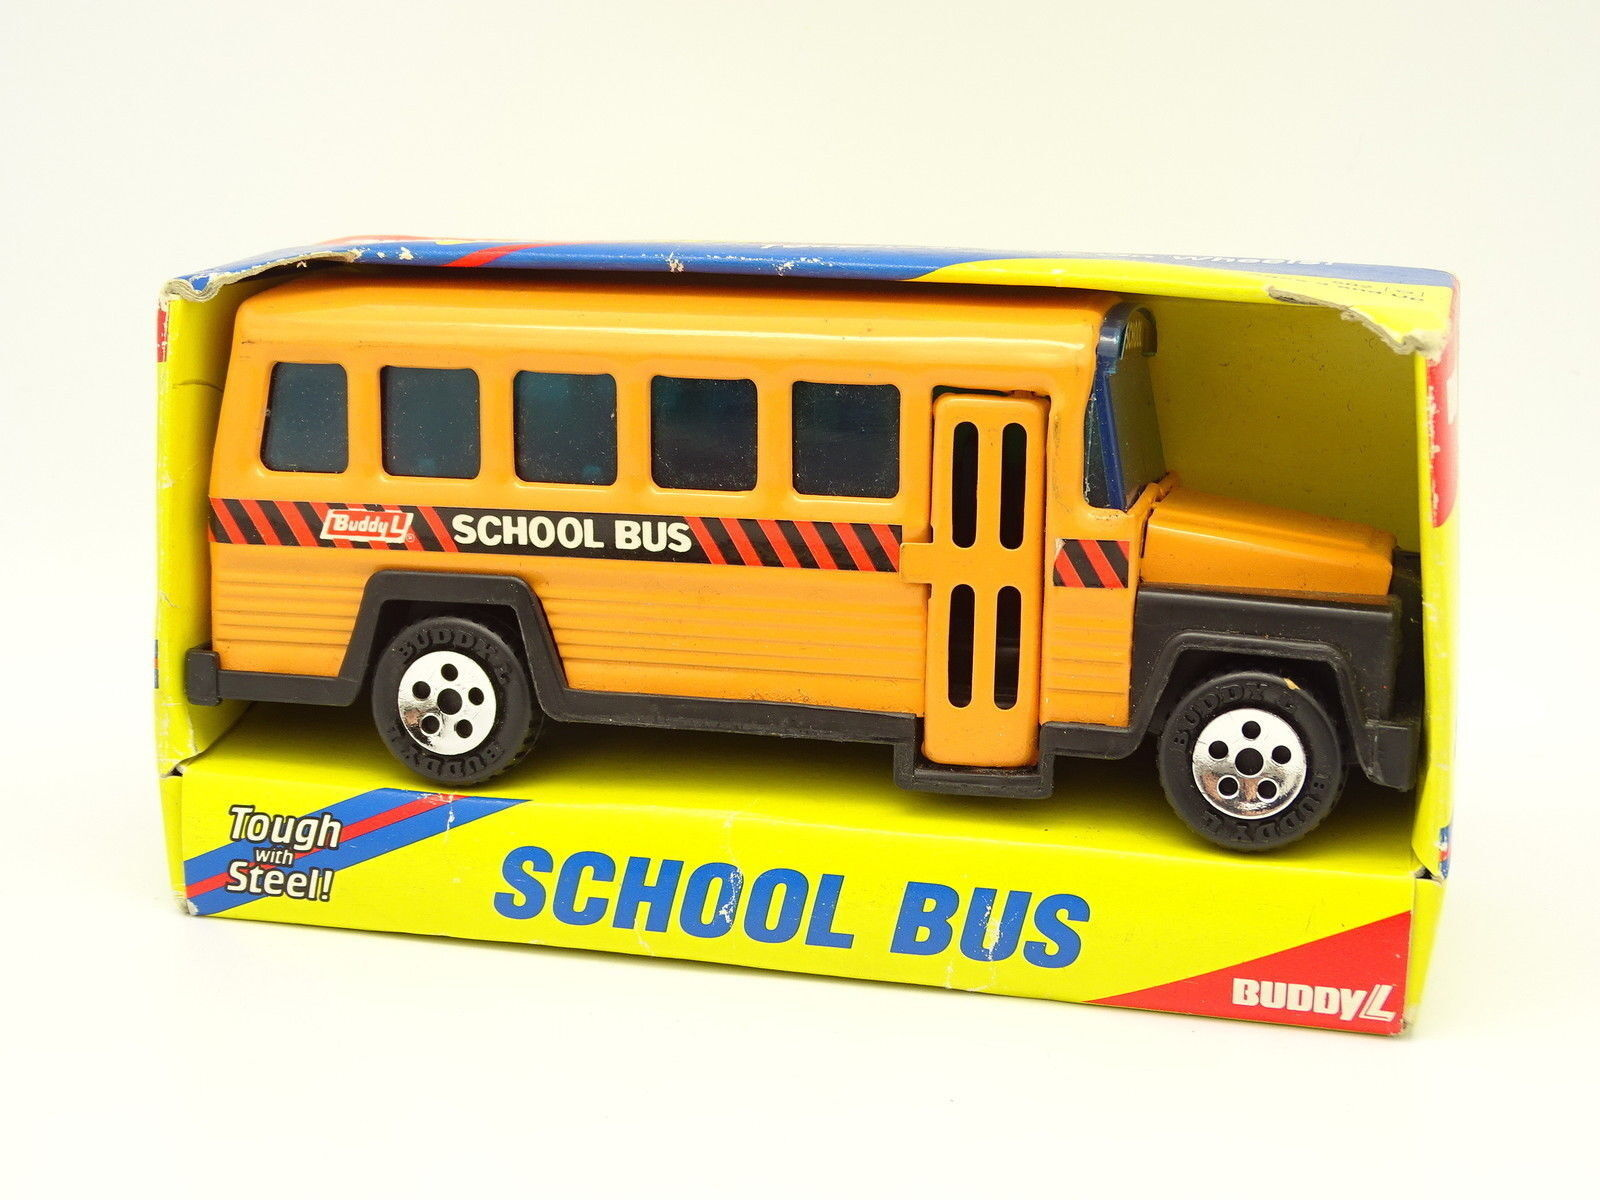 Buddy L - Bus Autobús US School Bus